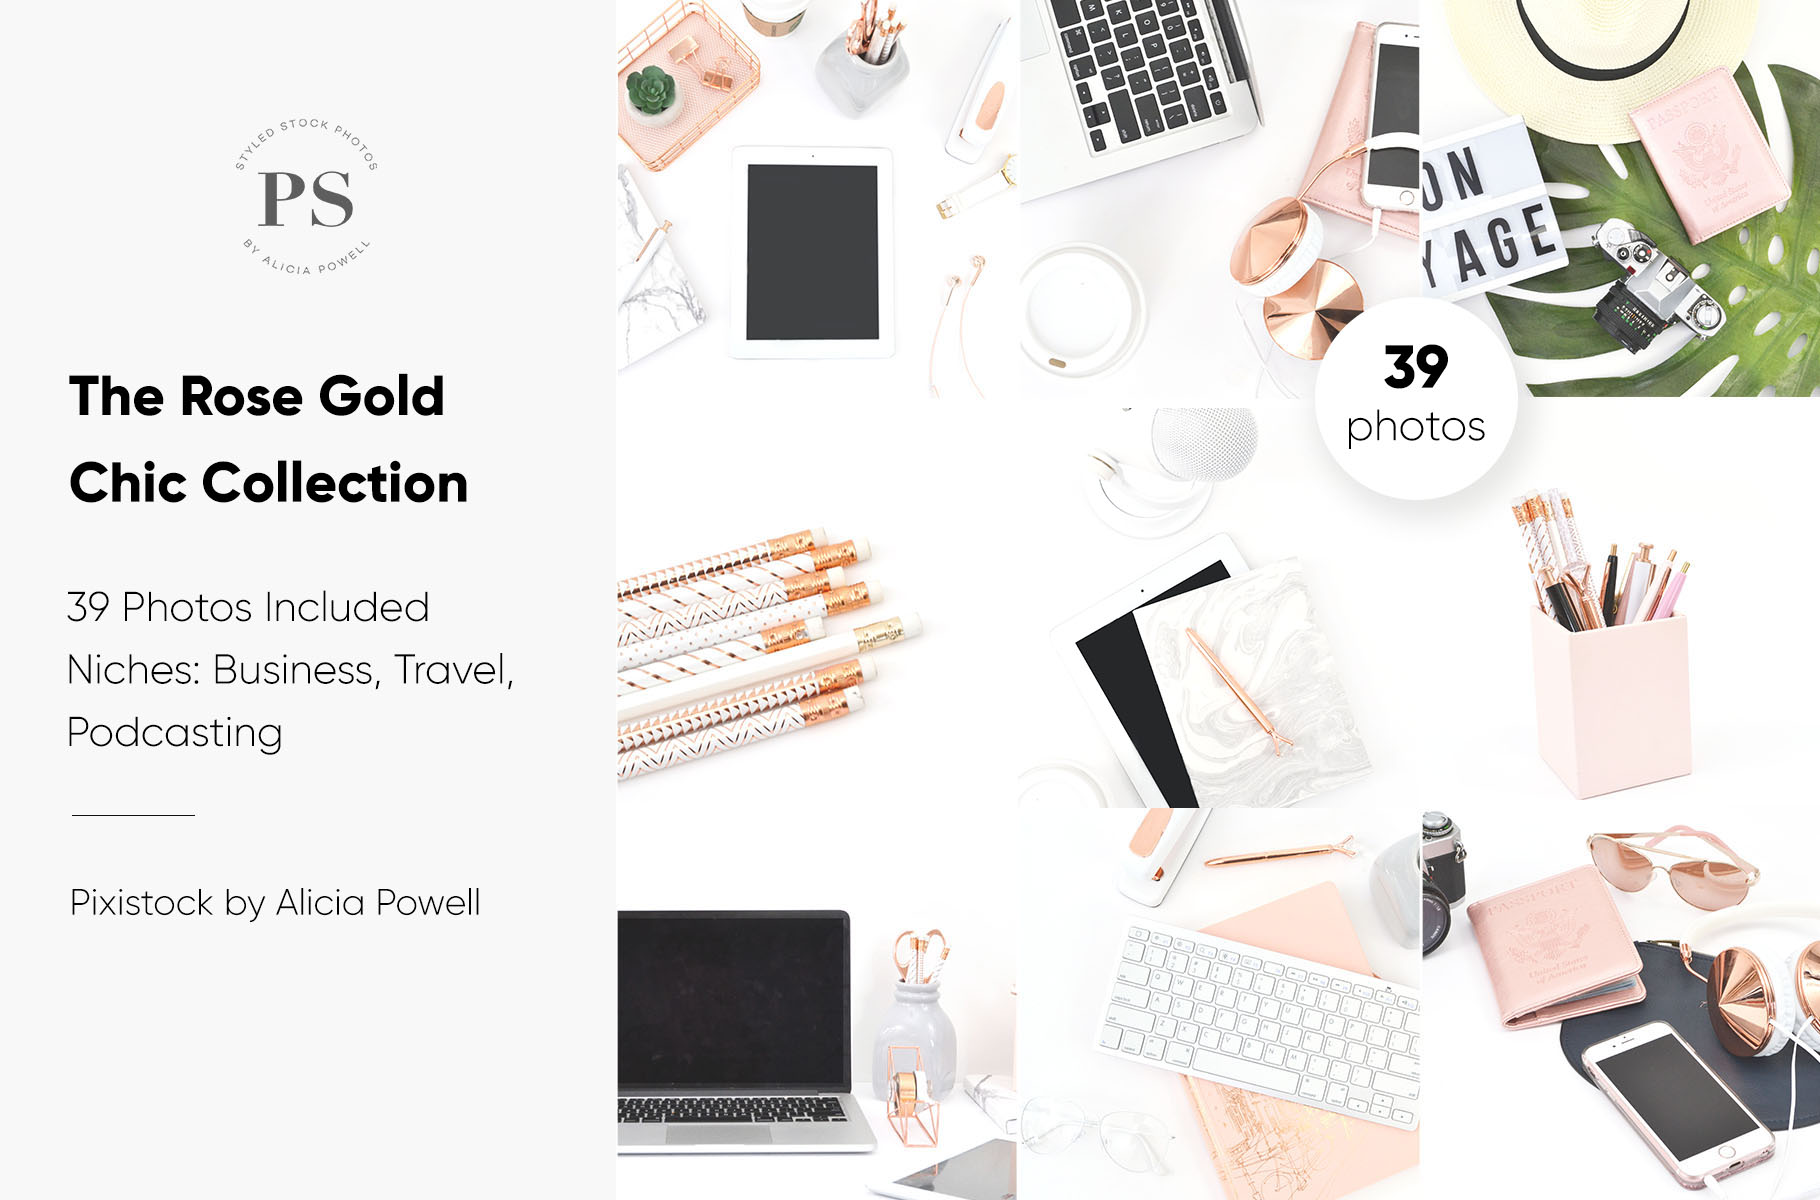 Rose Gold Chic Stock Photo Collection